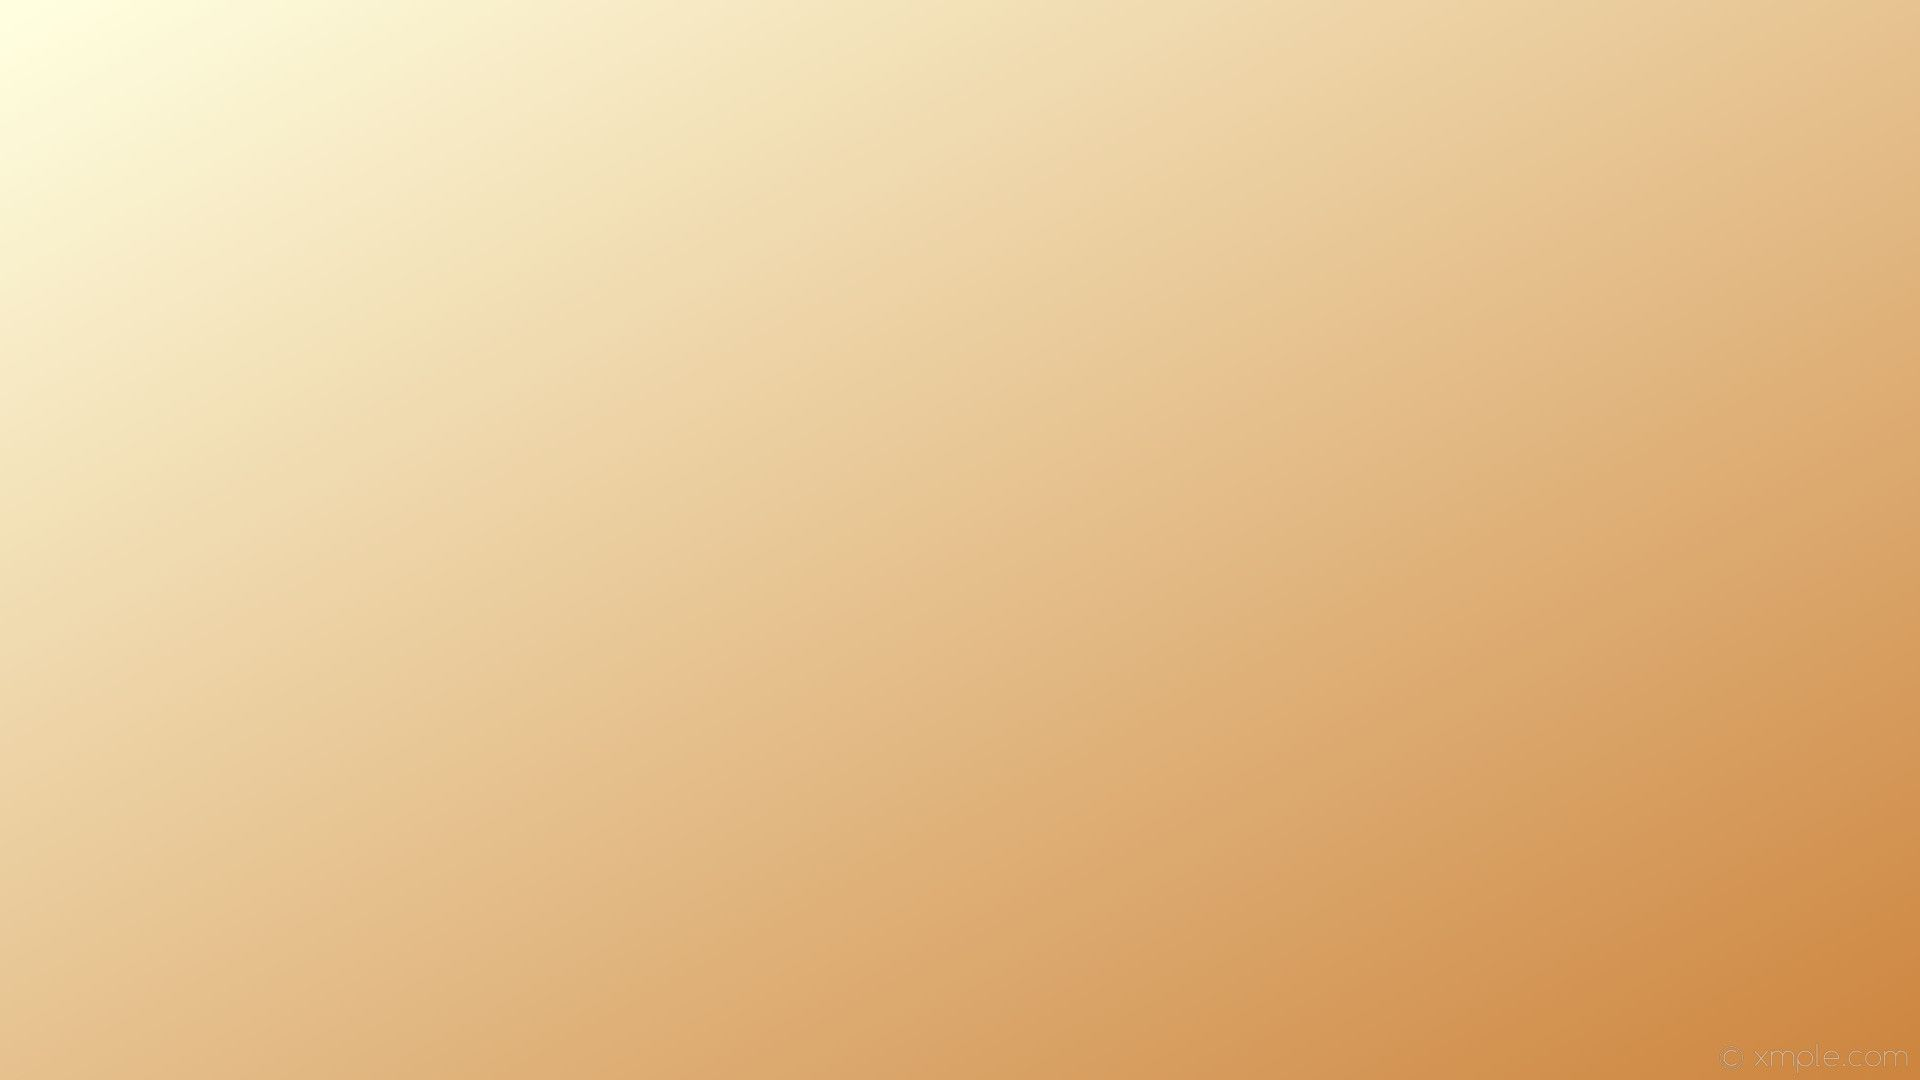 Light Brown Wallpapers - Top Free Light Brown Backgrounds ...